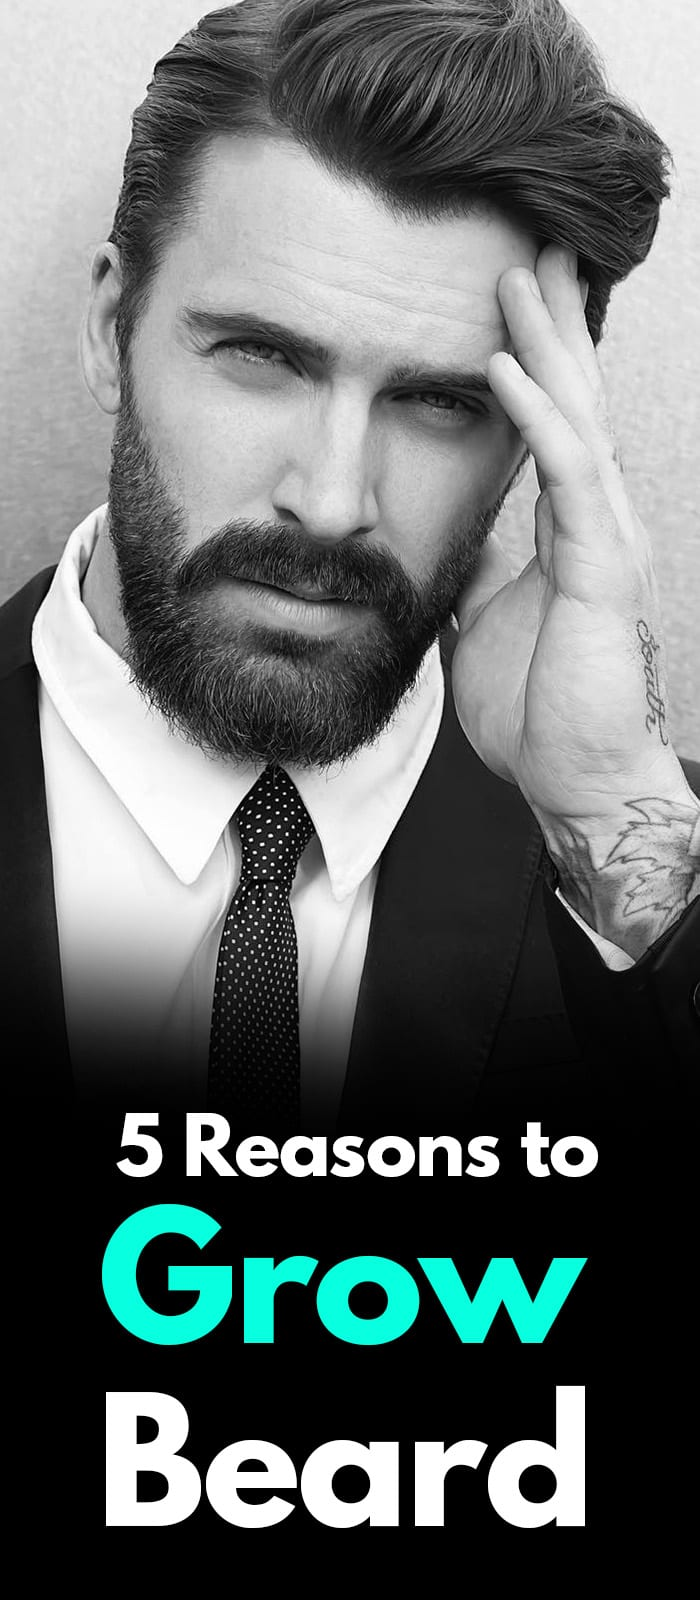 Reasons You Should Grow A Beard It'll Be The Best Thing You'll Do